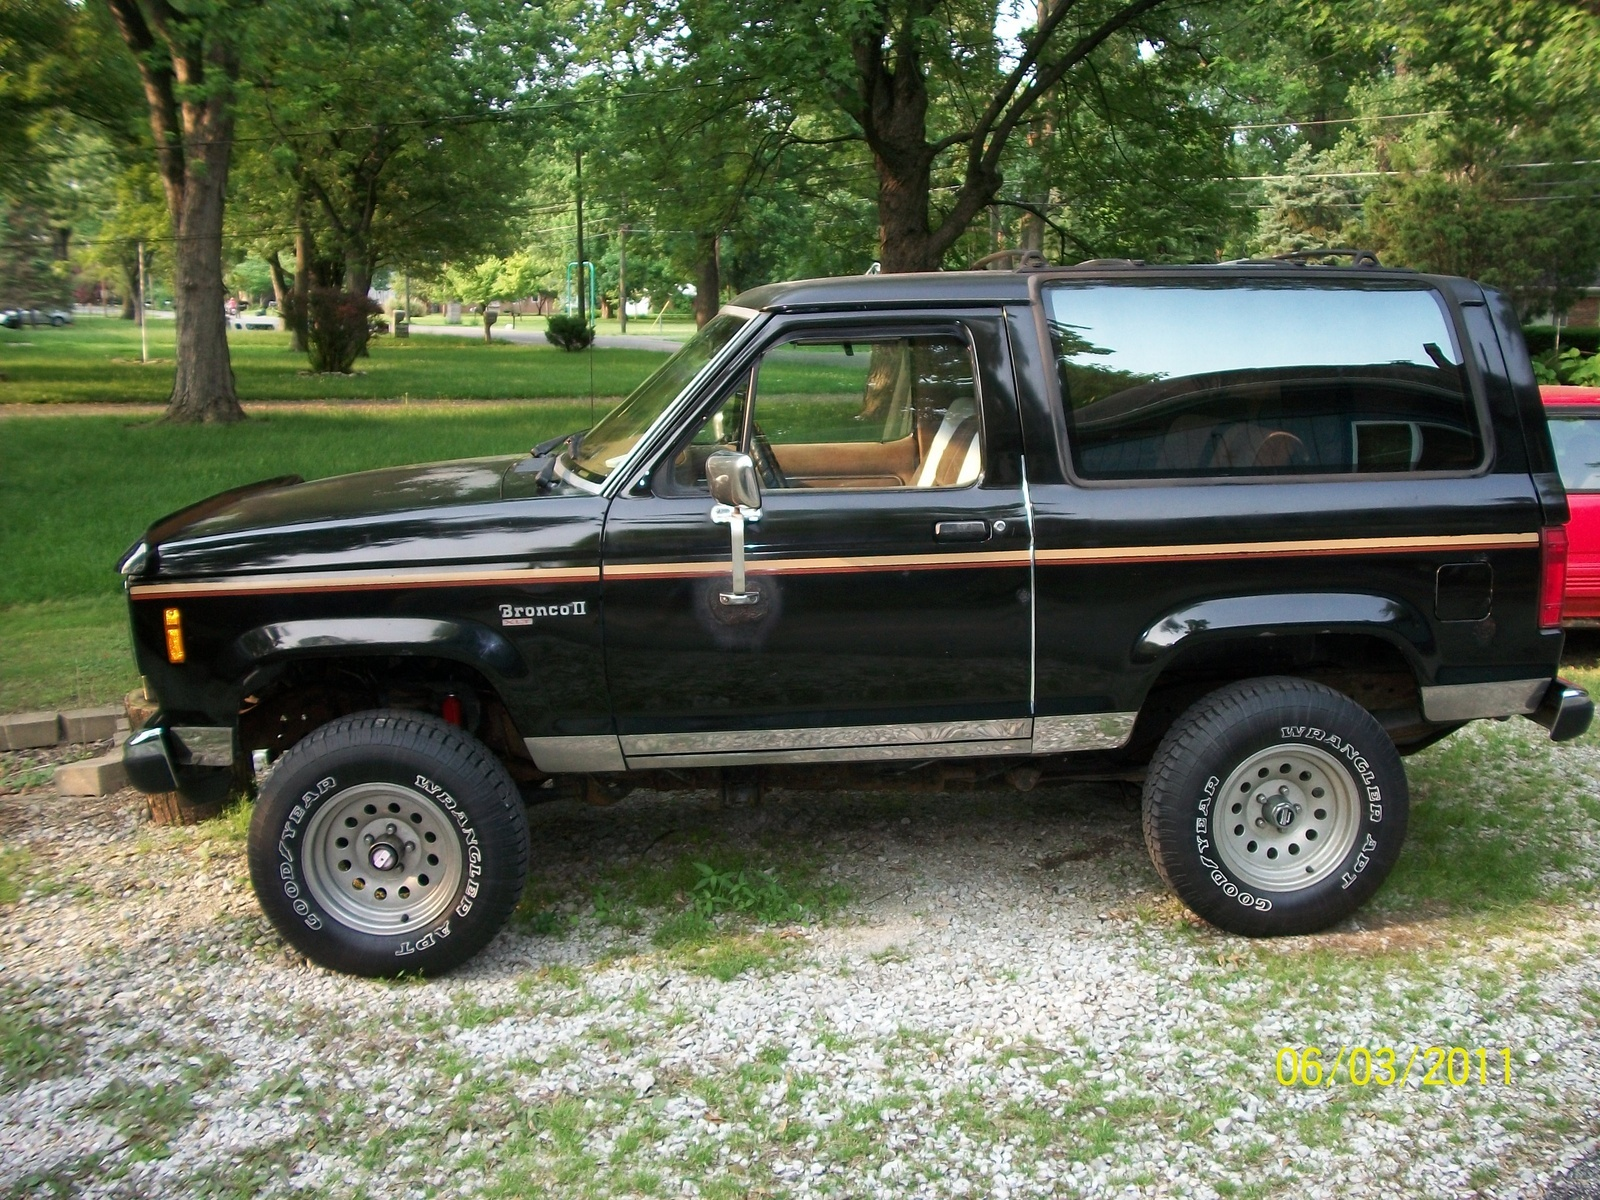 1988 ford bronco ii pic 8288093944897655007 1600x1200 jpeg